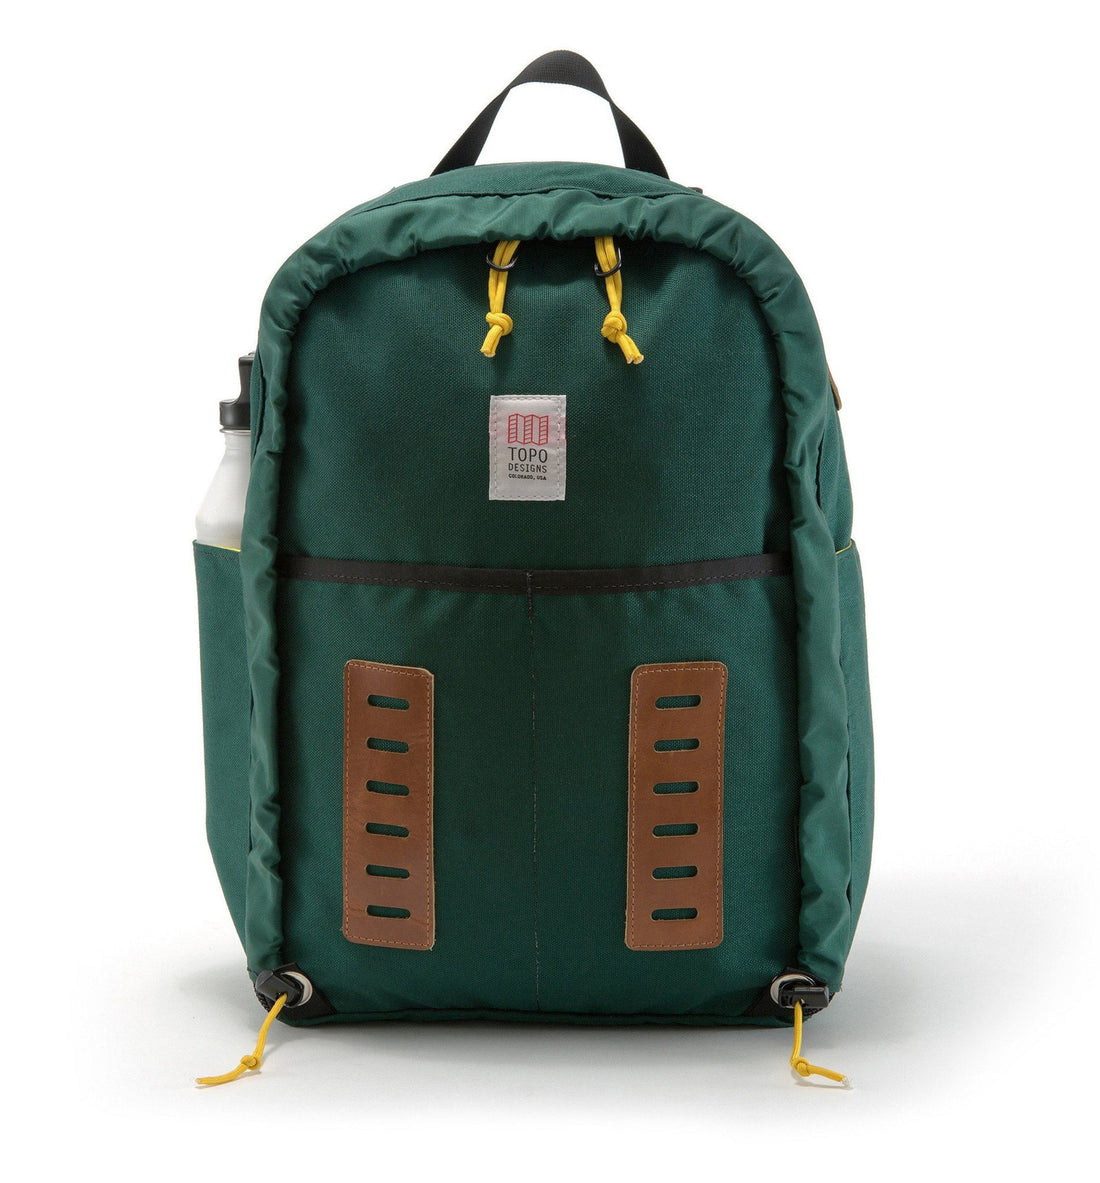 Topo Designs Span Pack - Camping - Iron and Resin